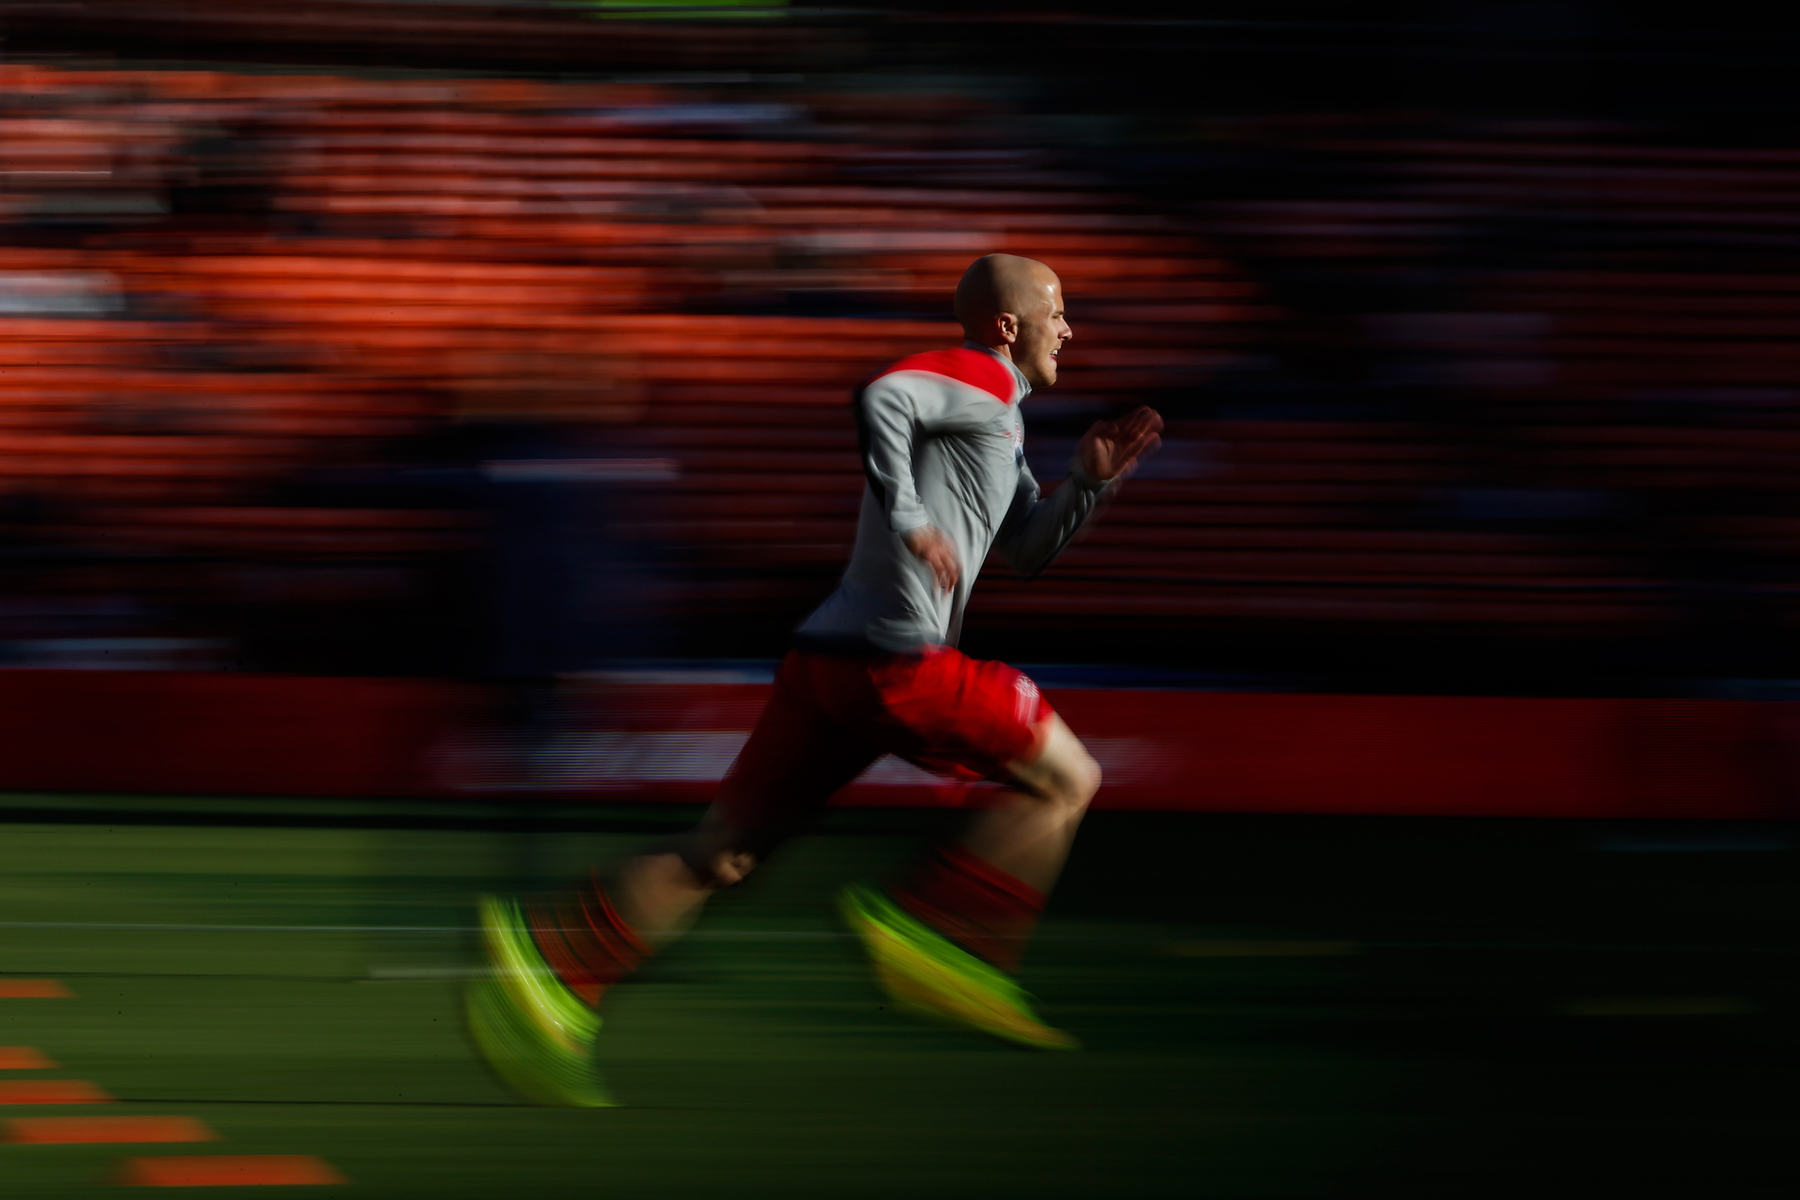 Michael Bradley of the U.S. men's national soccer team warms up before a friendly soccer match against Azerbaijan men's national soccer team in San Francisco, California May 27, 2014.